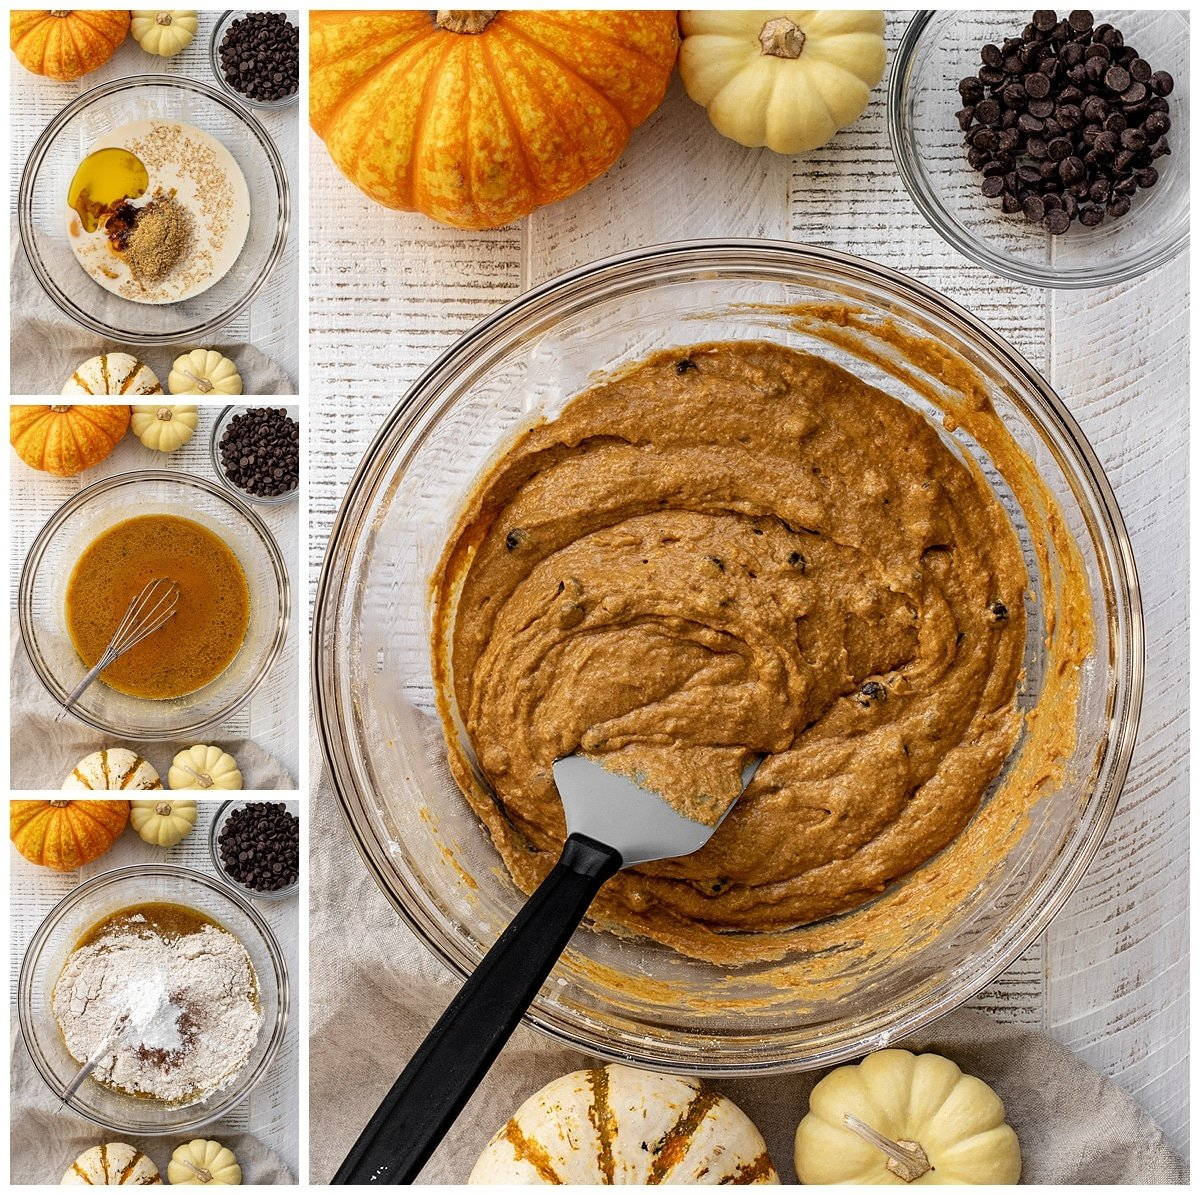 four pictures showing ingredients being added to mixing bowl to make a chocolate chip pumpkin bread batter